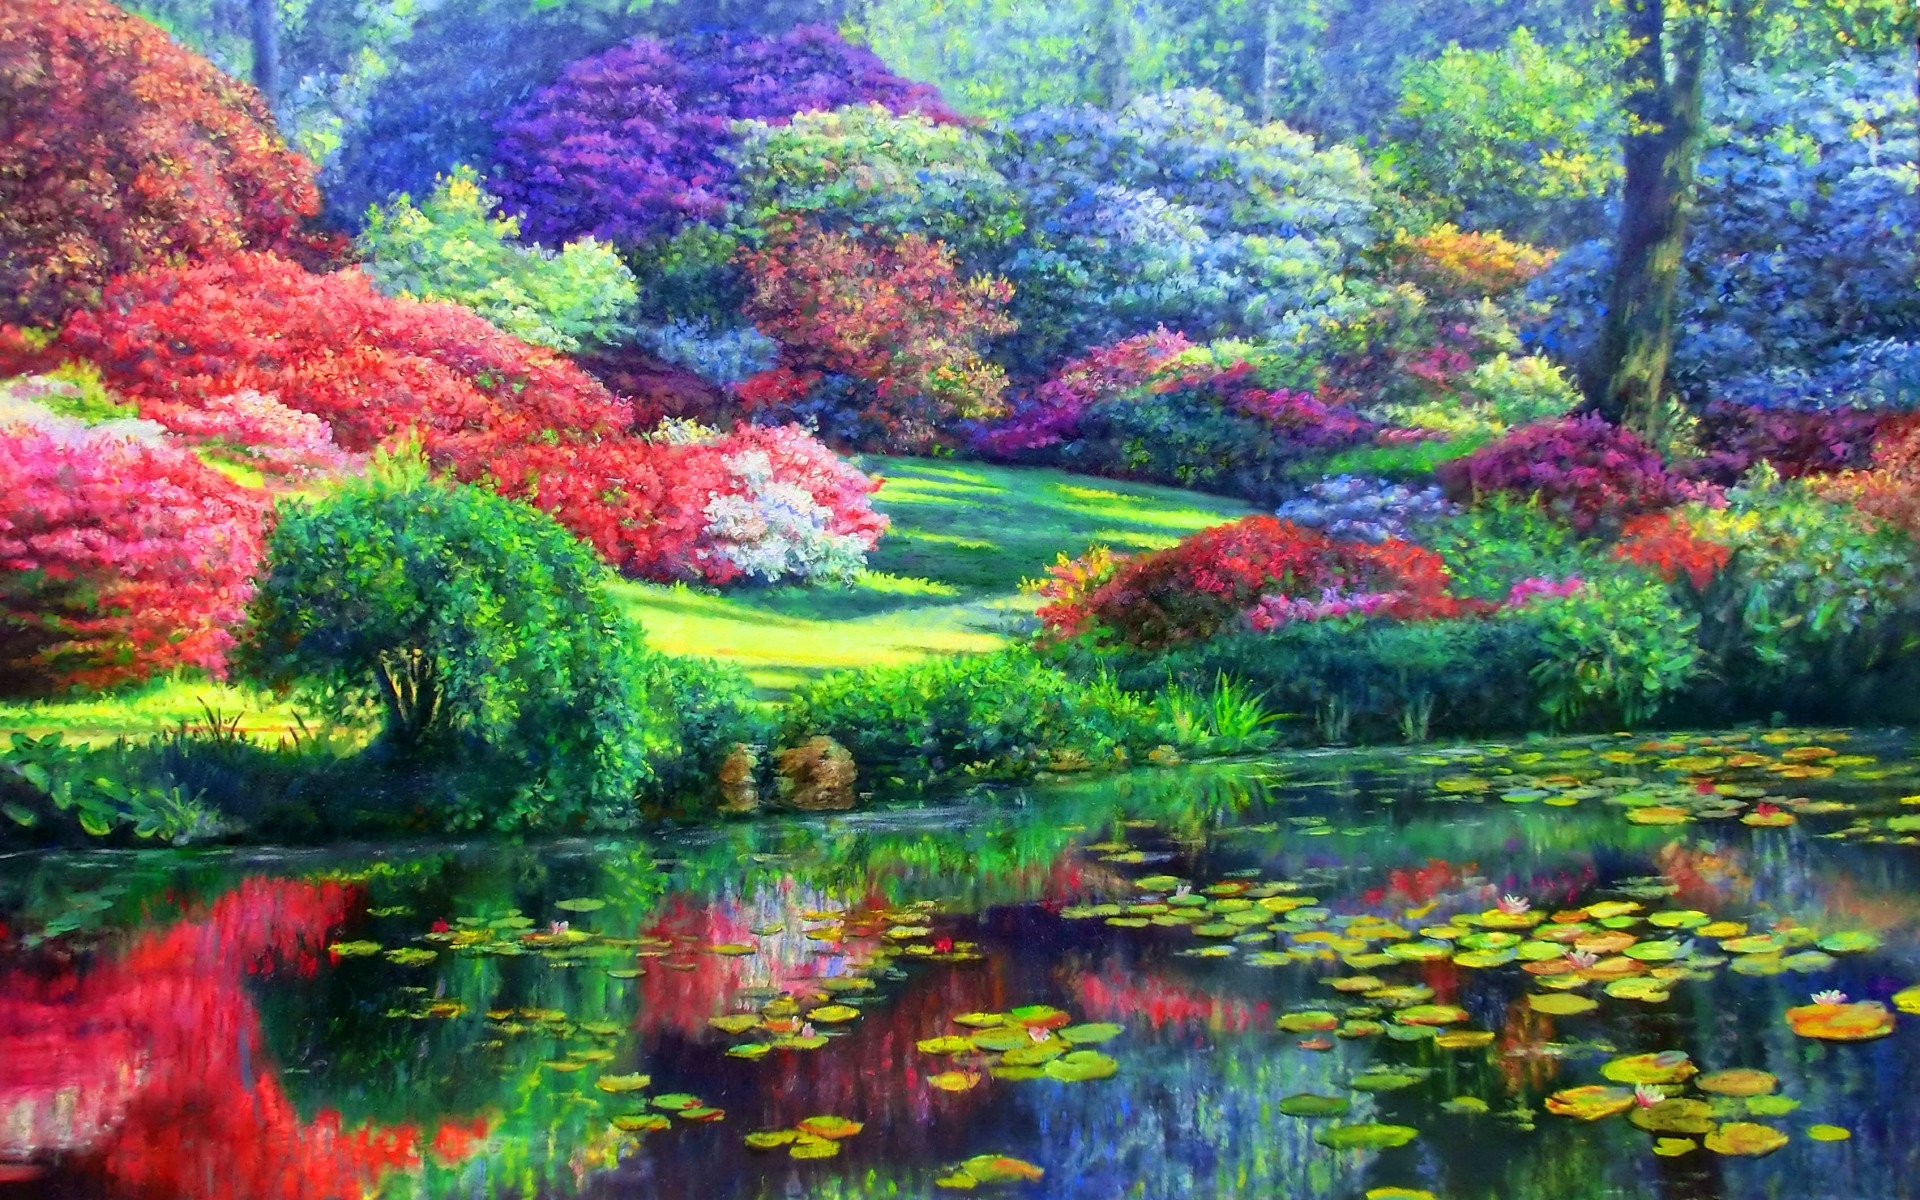 Colorful Trees & Lily Pond wallpapers | Colorful Trees & Lily Pond ...